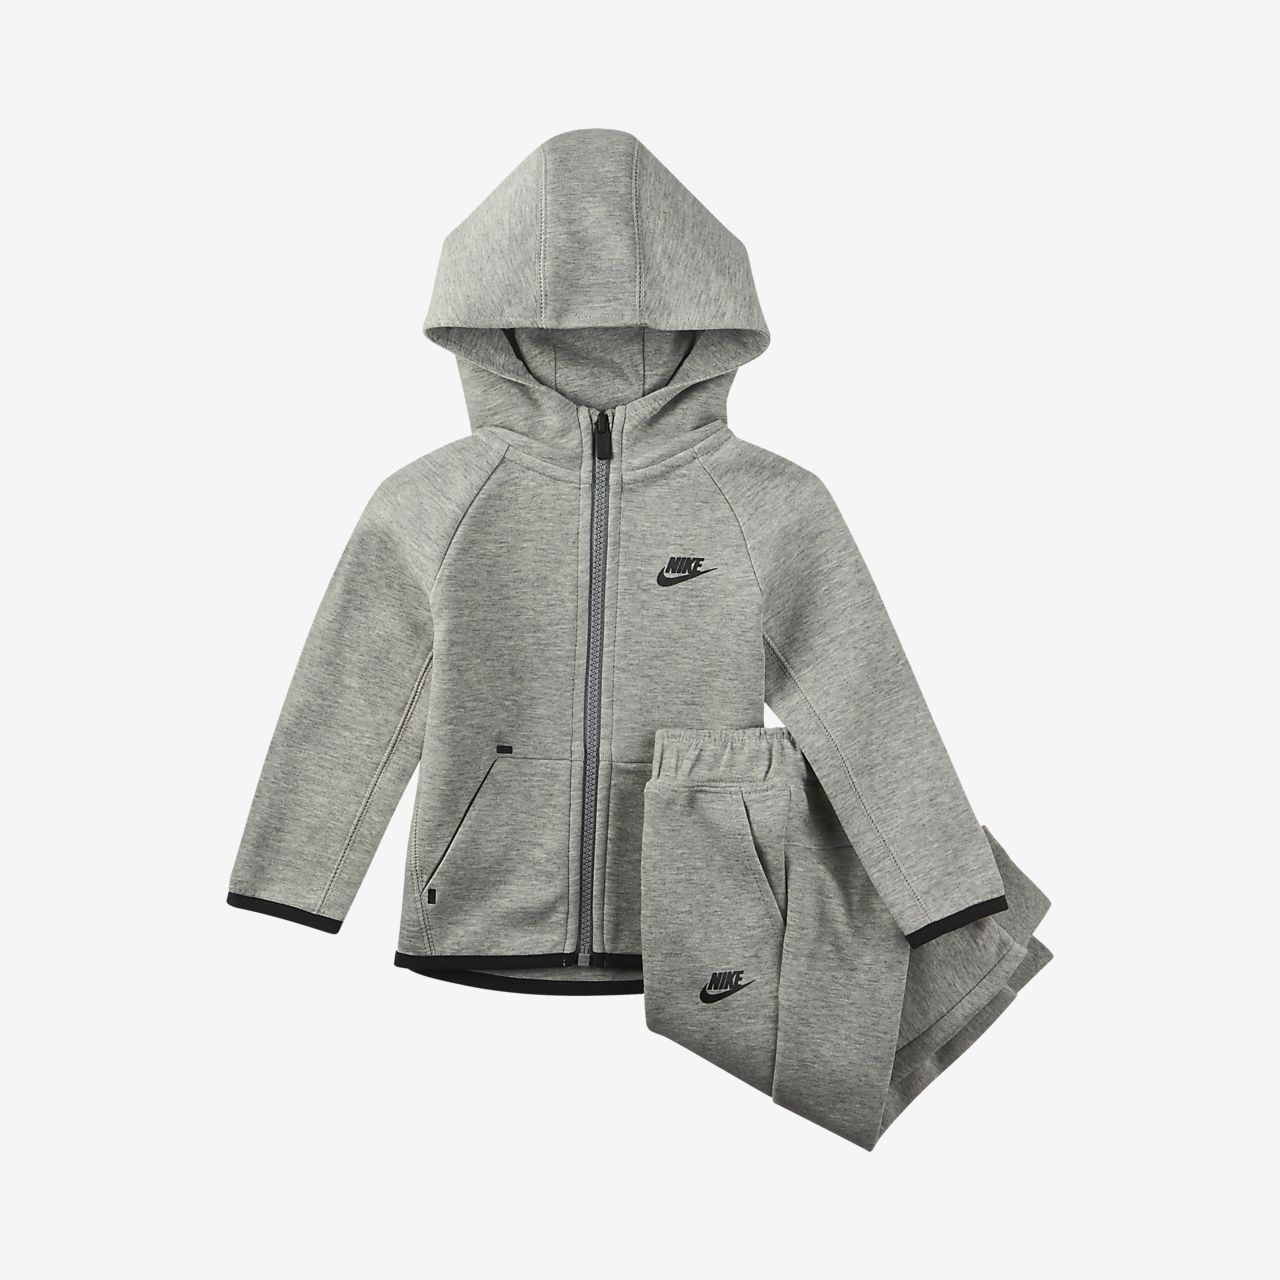 Nike Sportswear Tech Fleece Baby (12–24M) 2-Piece Set